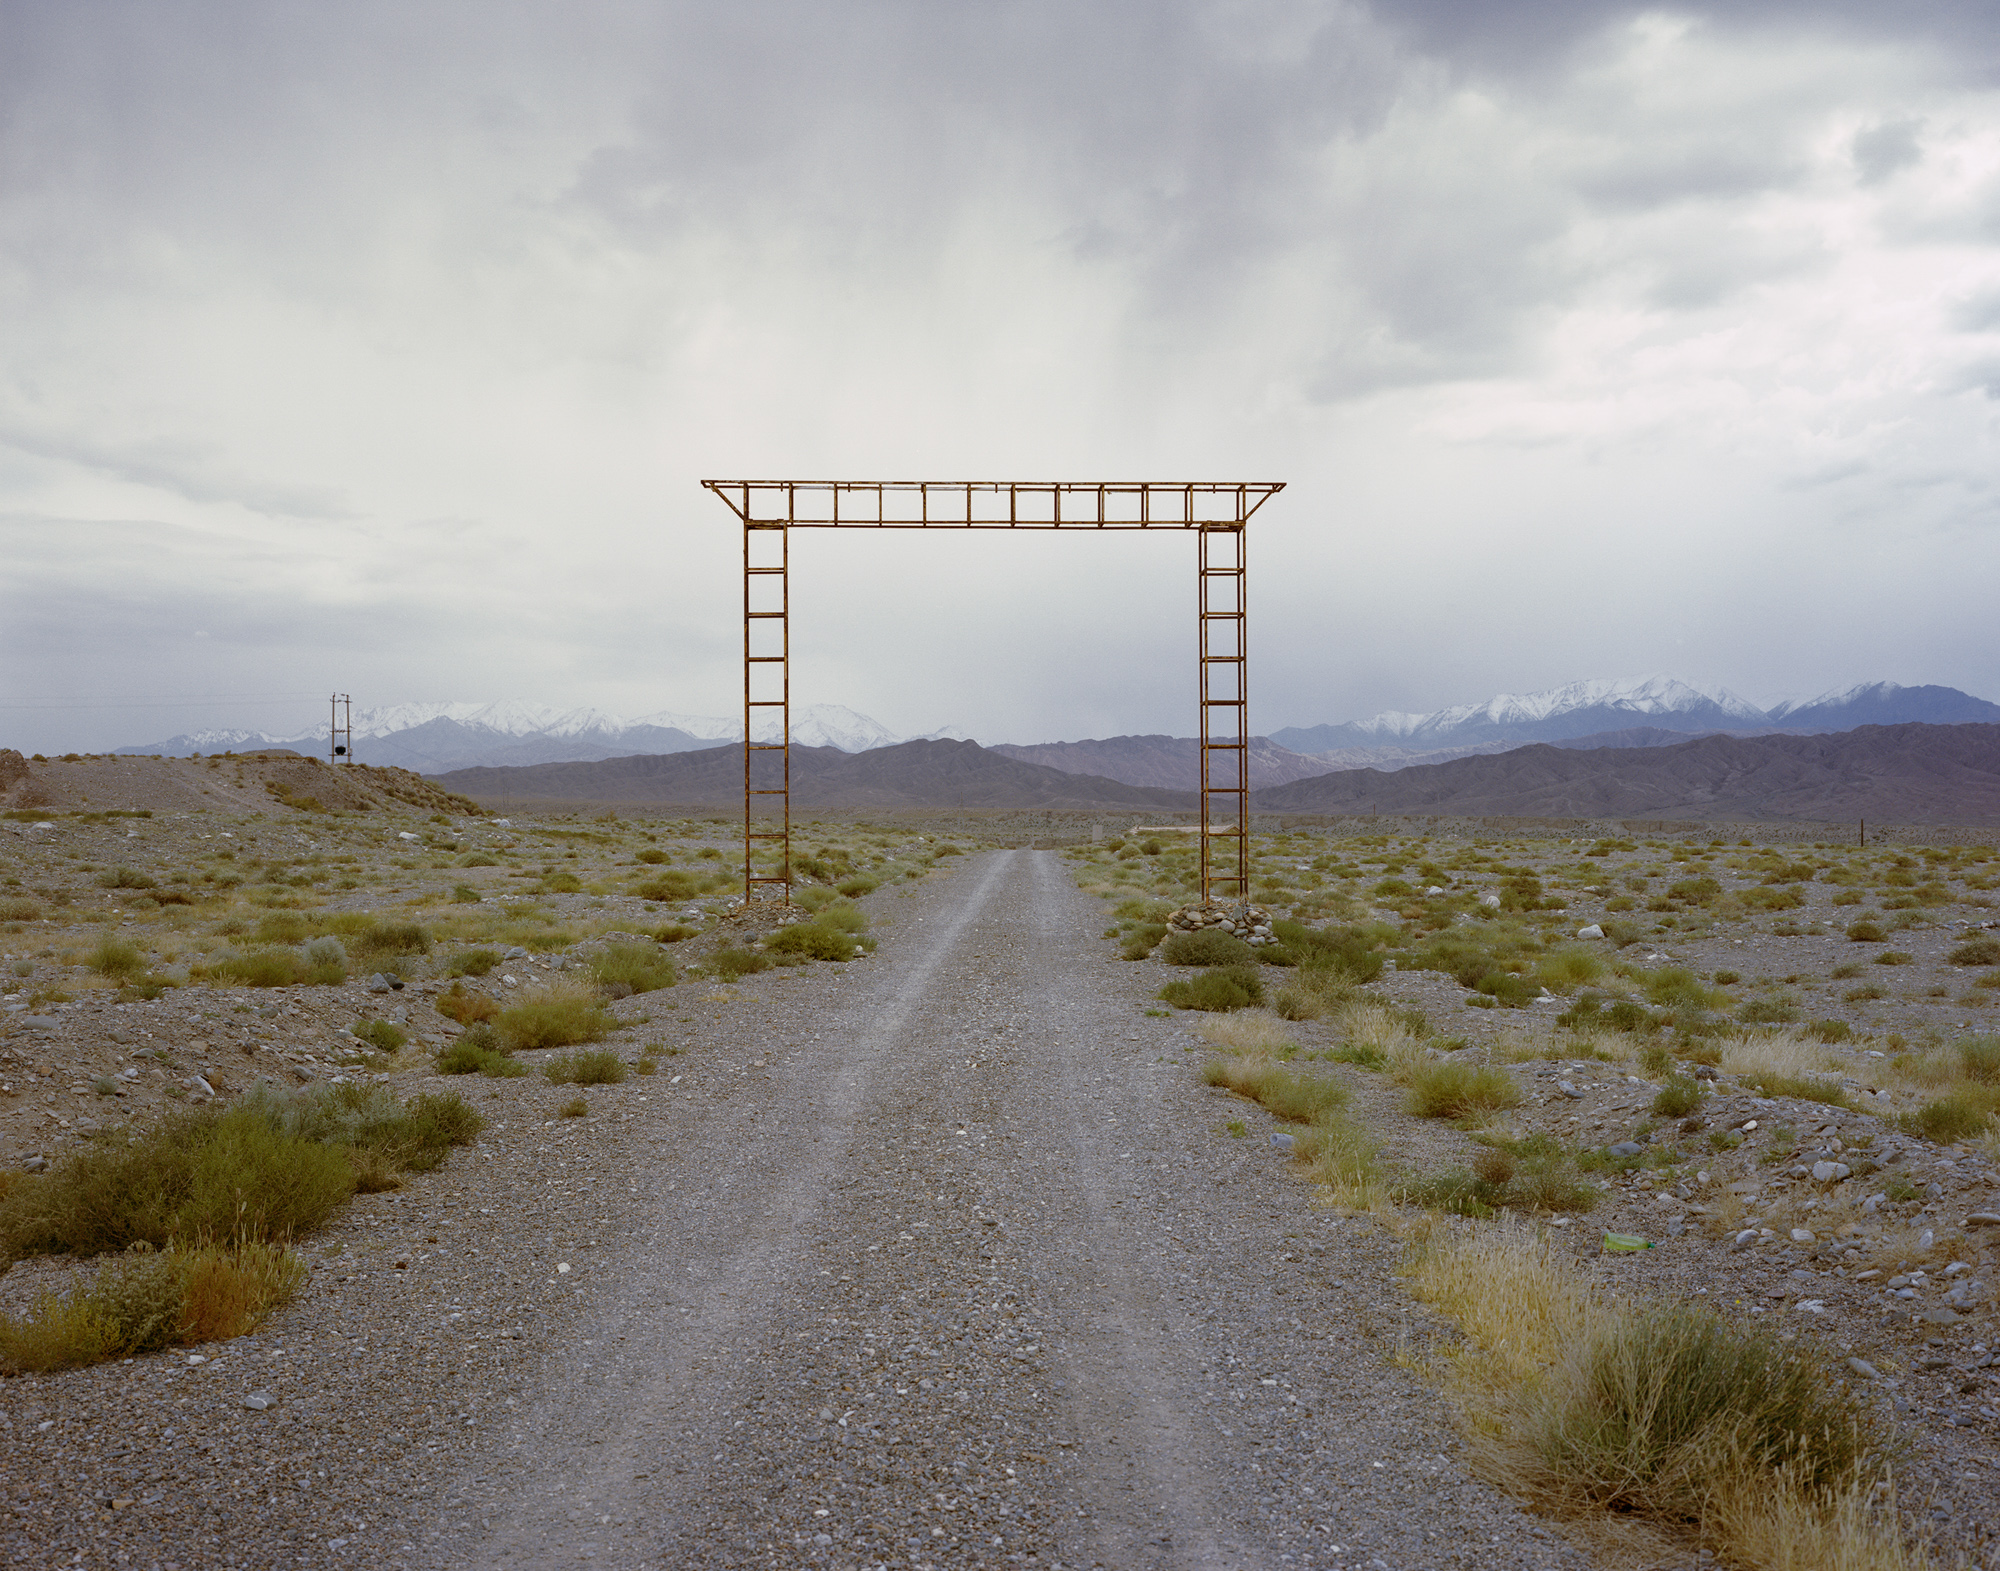 A gate sits on a road at the outskirts of Yumen, at the edge of the Gobi Desert between the Qilian and Beishan mountains. High-speed winds blow through the valley. Over the past decade, Yumen has constructed several giant wind farms, in an attempt to transform its energy production into something more sustainable.